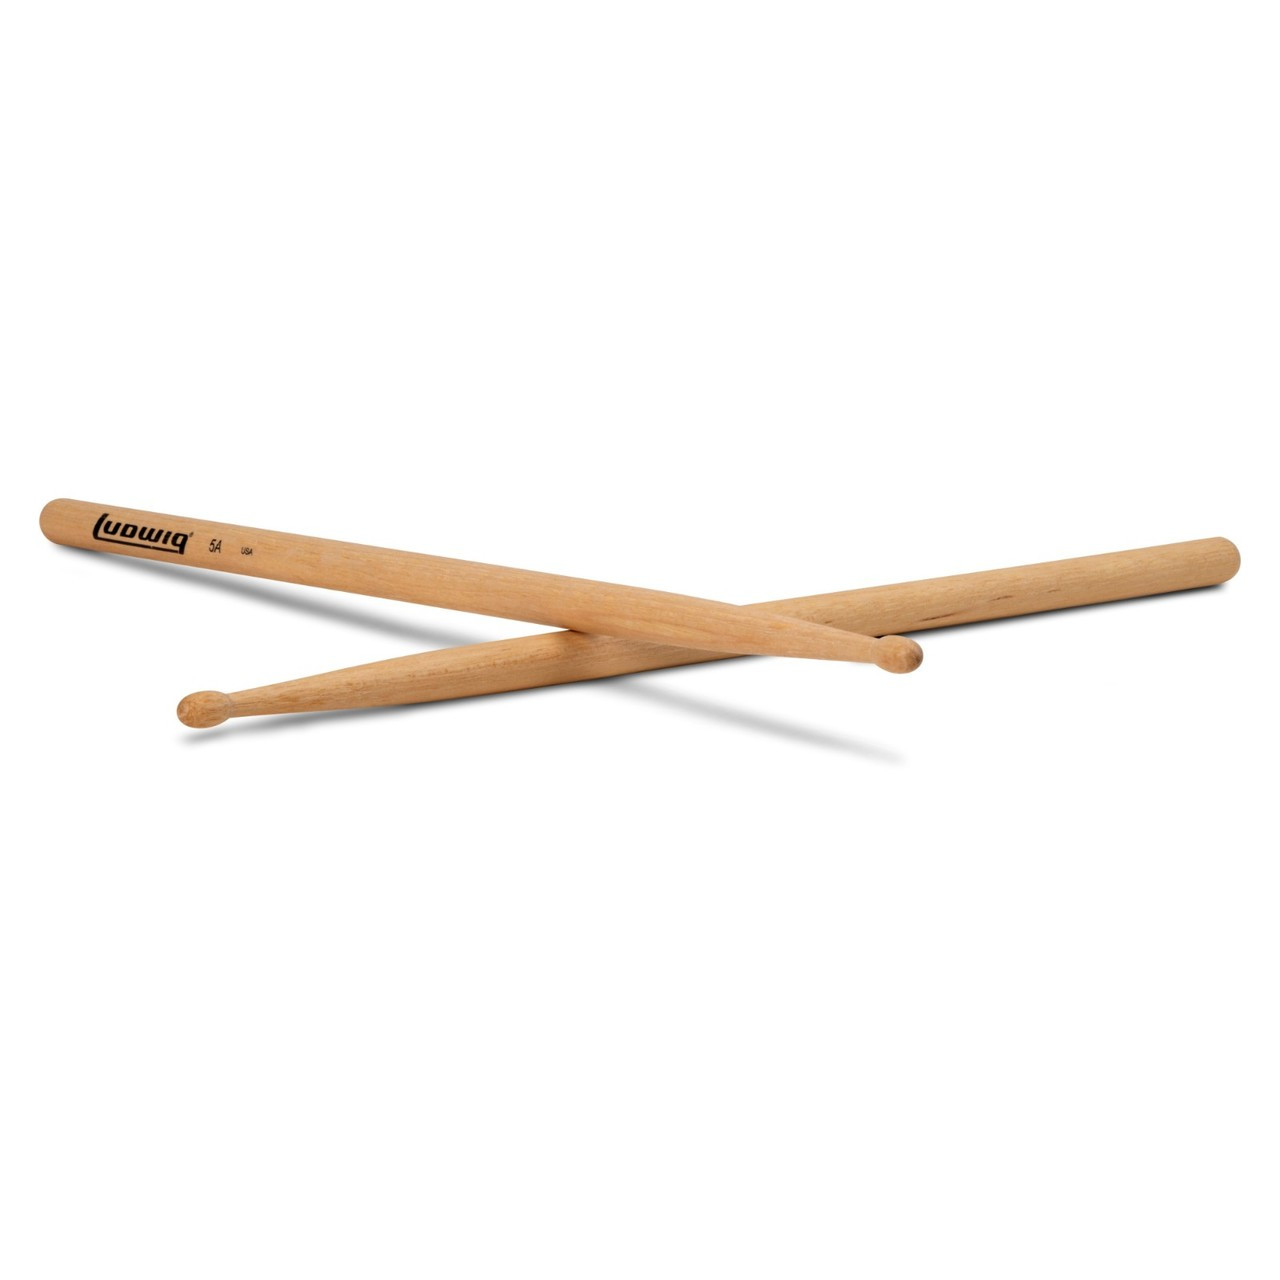 New Ludwig 7A Wood Tip Olive Bead Drumsticks